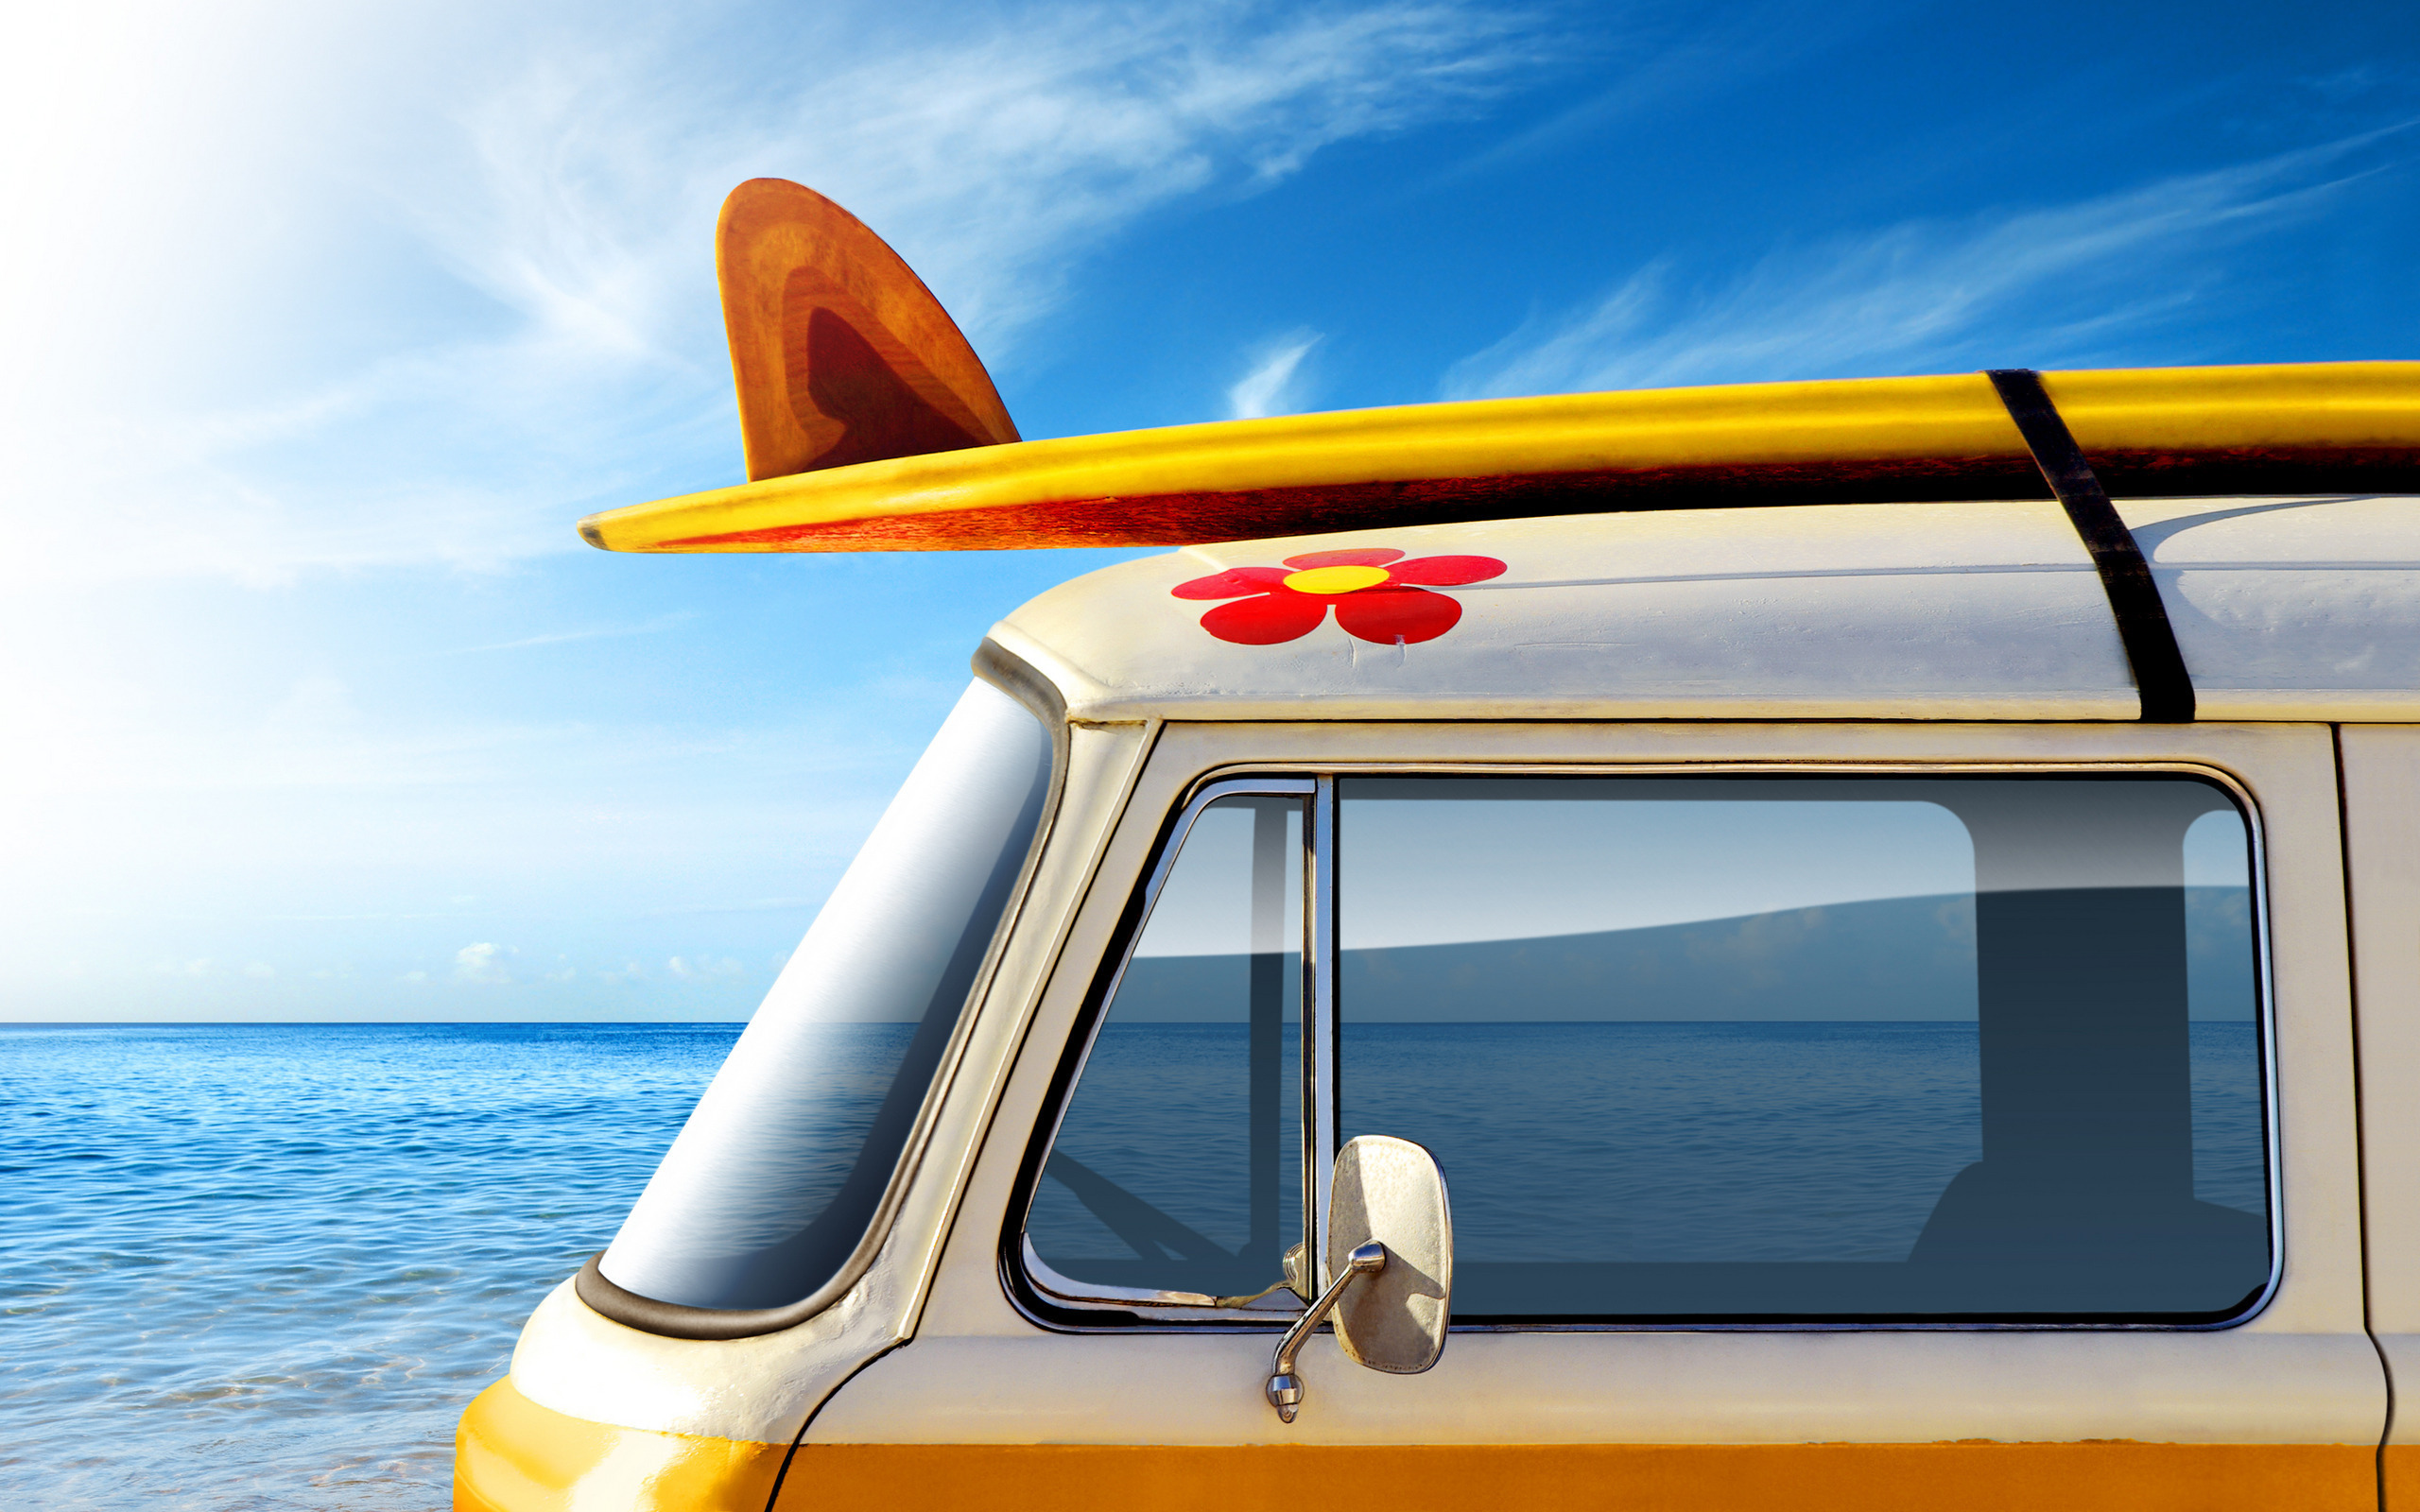 Surfboard Wallpaper Desktop summer mood car HD Desktop Wallpapers 2560x1600